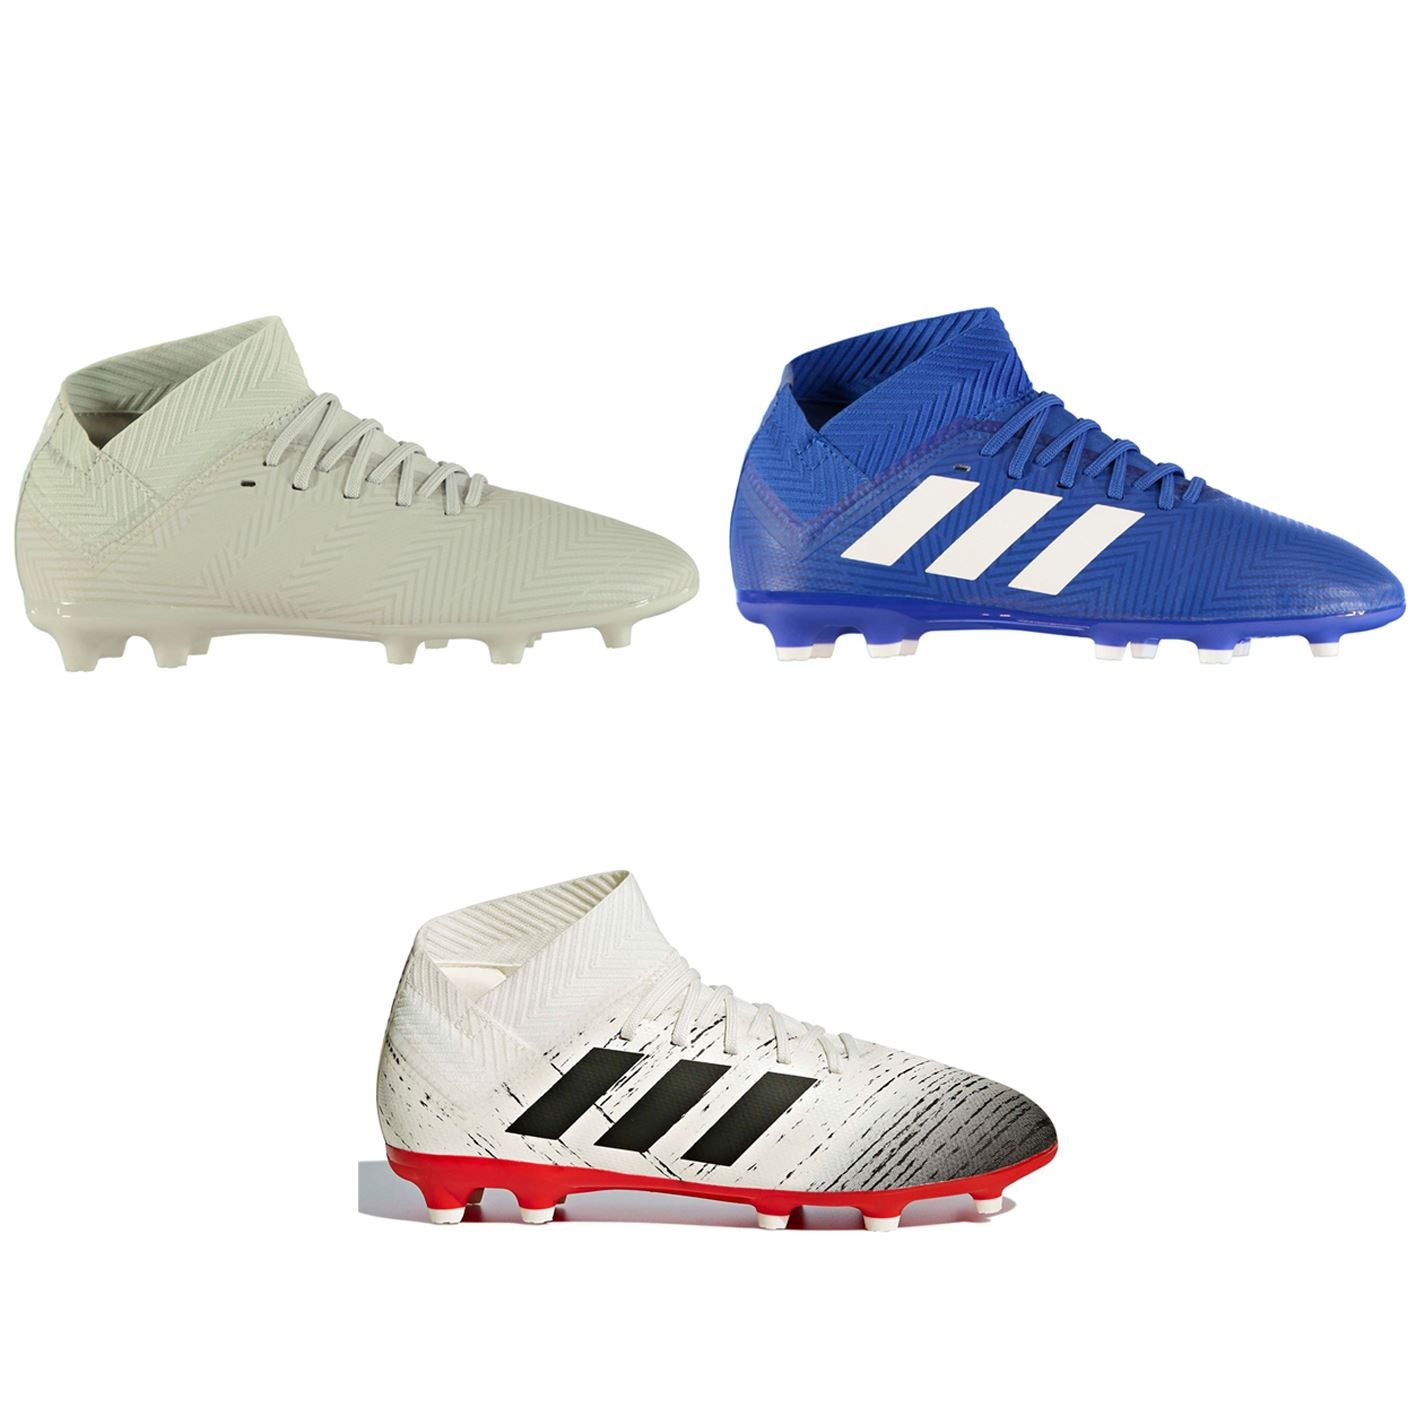 Details about adidas Nemeziz 18.3 FG Firm Ground Football Boots Childs Soccer Shoes Cleats